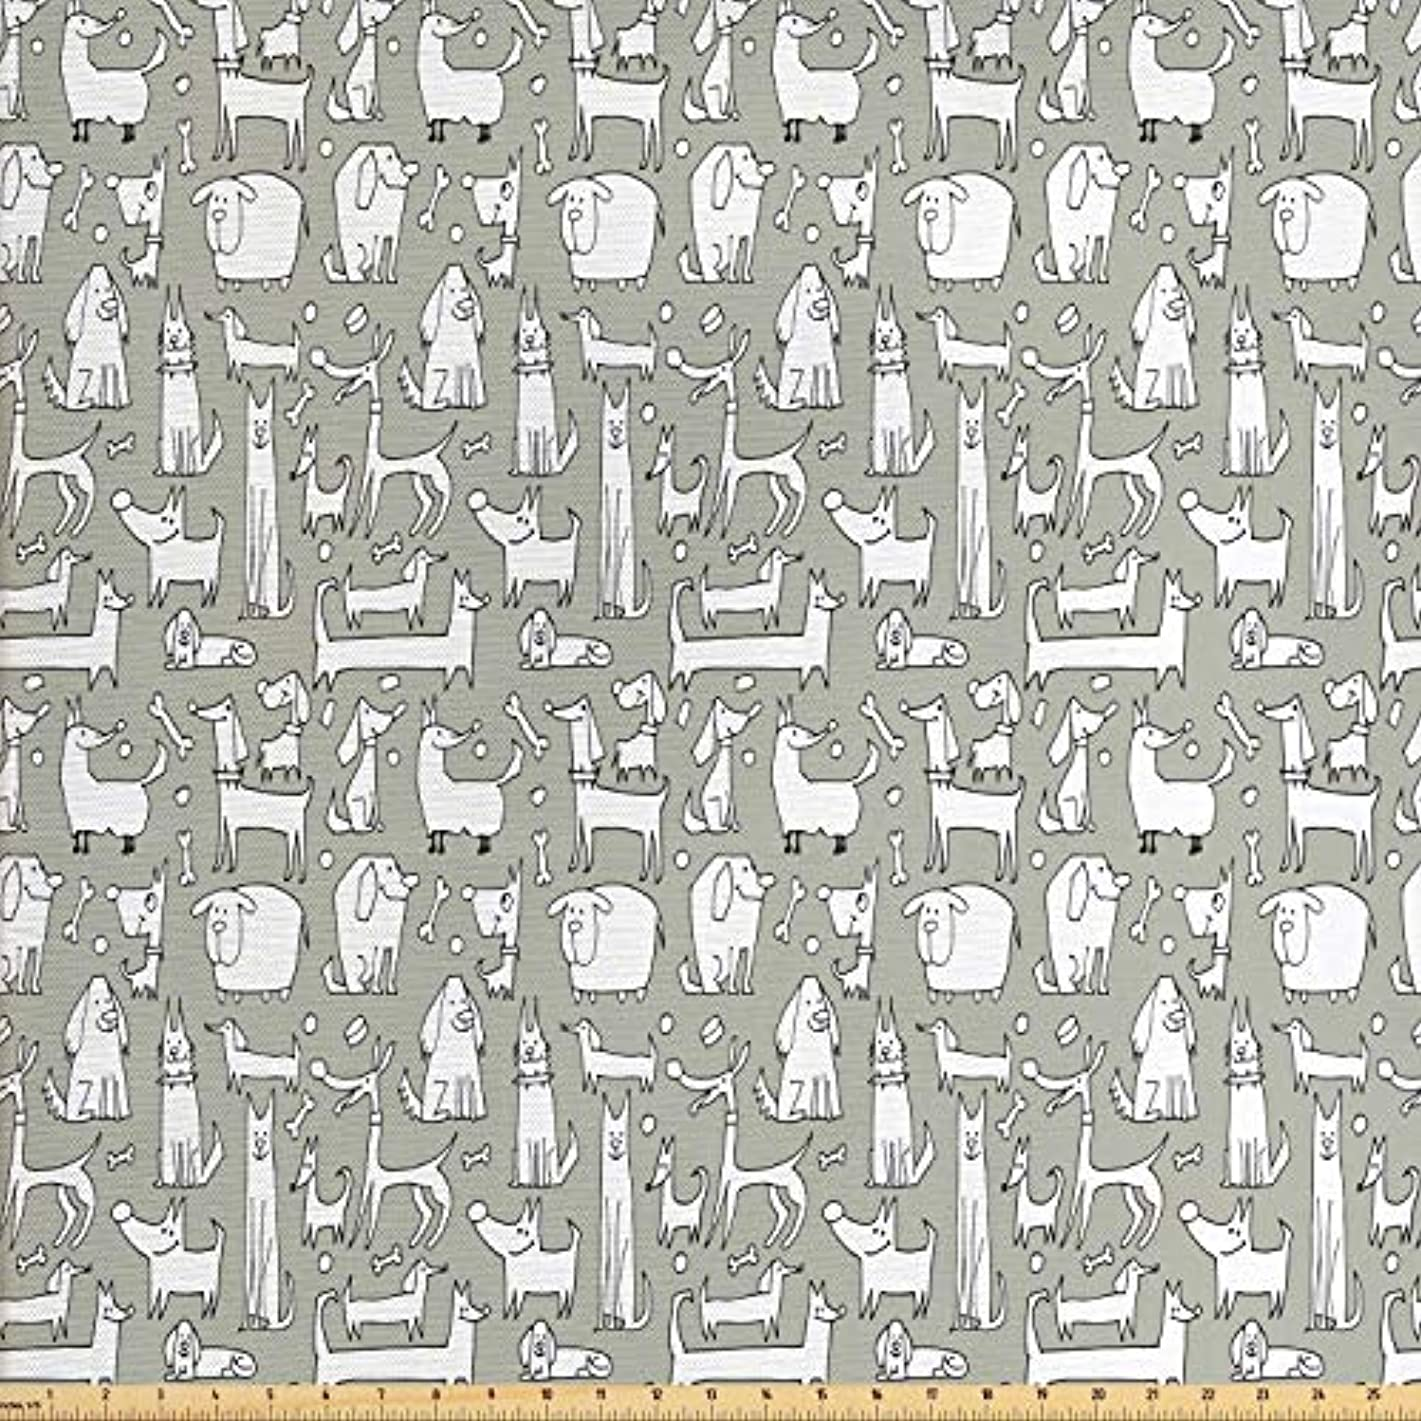 Lunarable Dog Bone Fabric by The Yard, Composition of Doodle Dog Print with Labrador Hound Pug Dachshund Breeds, Decorative Fabric for Upholstery and Home Accents, 2 Yards, Sage Green White